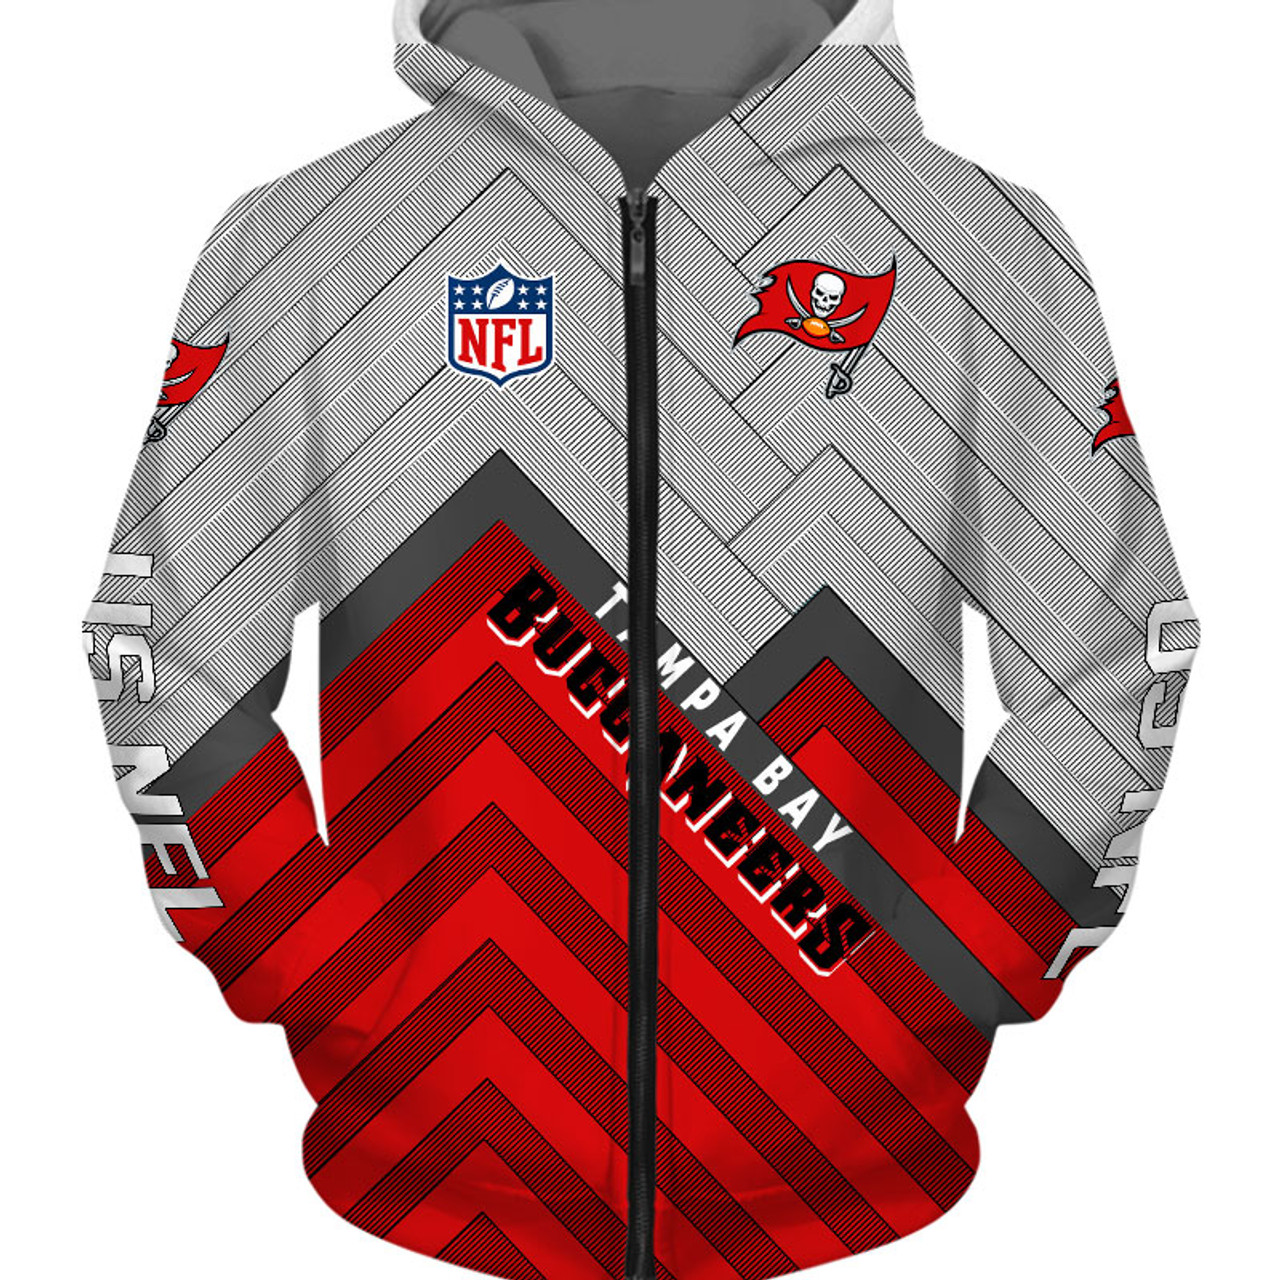 **(OFFICIAL-N.F.L.TAMPA-BAY-BUCCANEERS-ZIPPERED-HOODIES/3D-CUSTOM-BUCCANEERS-LOGOS & OFFICIAL-BUCCANEERS-TEAM-COLORS/NICE-3D-DETAILED-GRAPHIC-PRINTED-DOUBLE-SIDED/ALL-OVER-ENTIRE-HOODIE-PRINTED-DESIGN/WARM-PREMIUM-N.F.L.BUCCANEERS-ZIPPERED-HOODIES)**